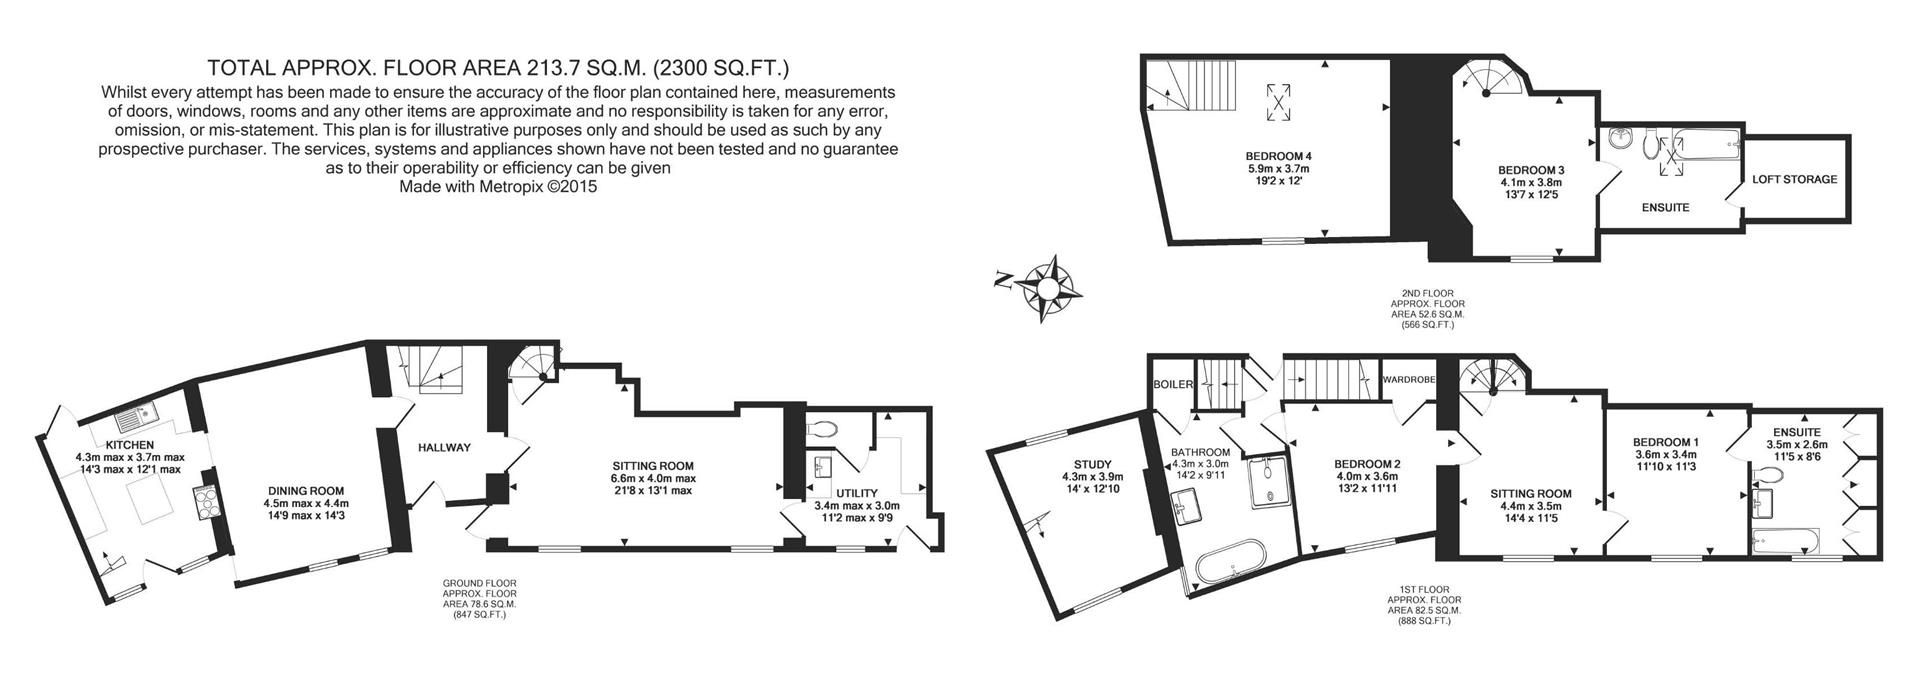 Property for Sale in Nailsworth Buy Properties in Nailsworth